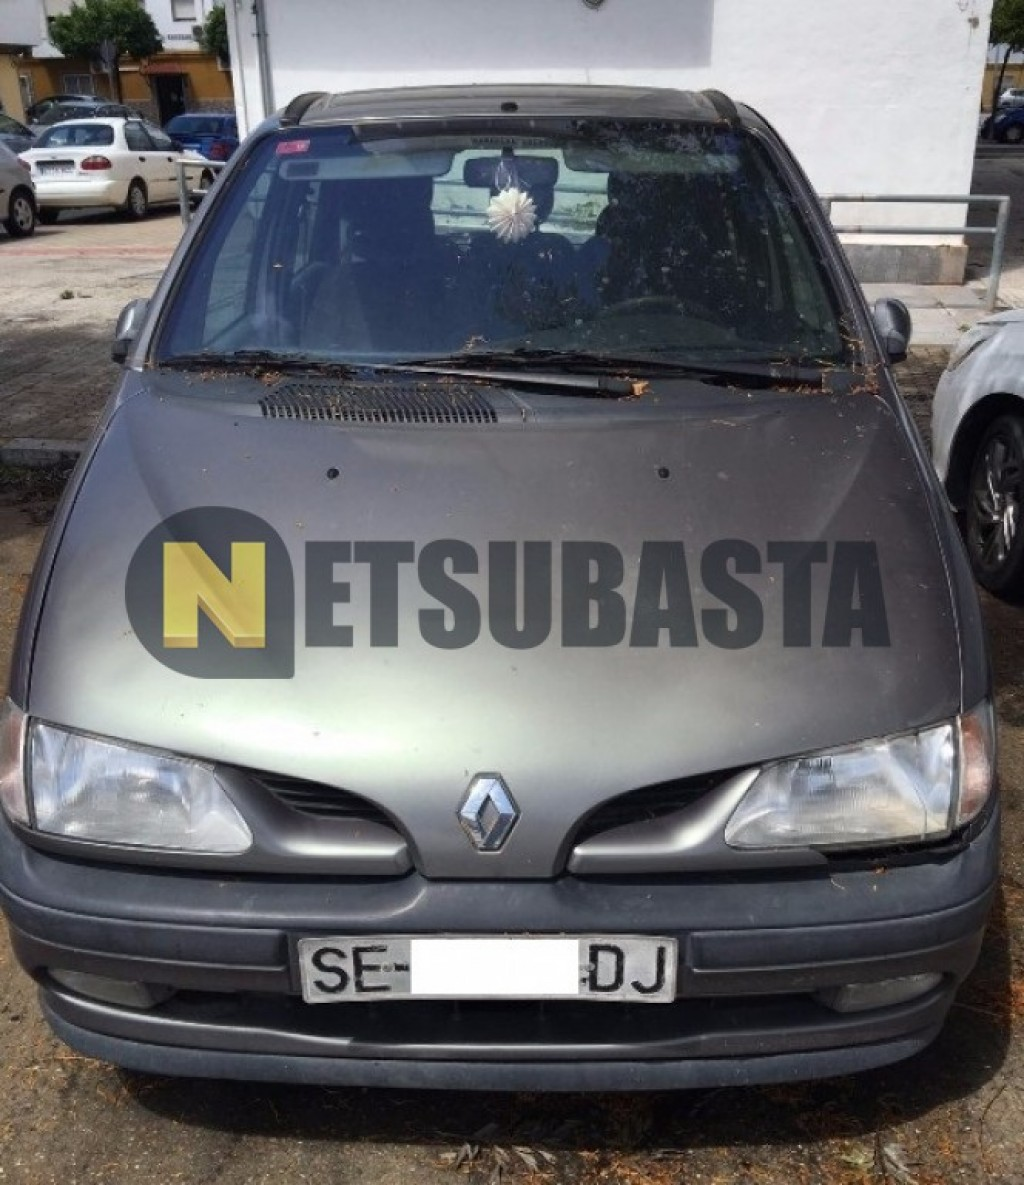 subasta de renault megane scenic 1 9dti 1999. Black Bedroom Furniture Sets. Home Design Ideas